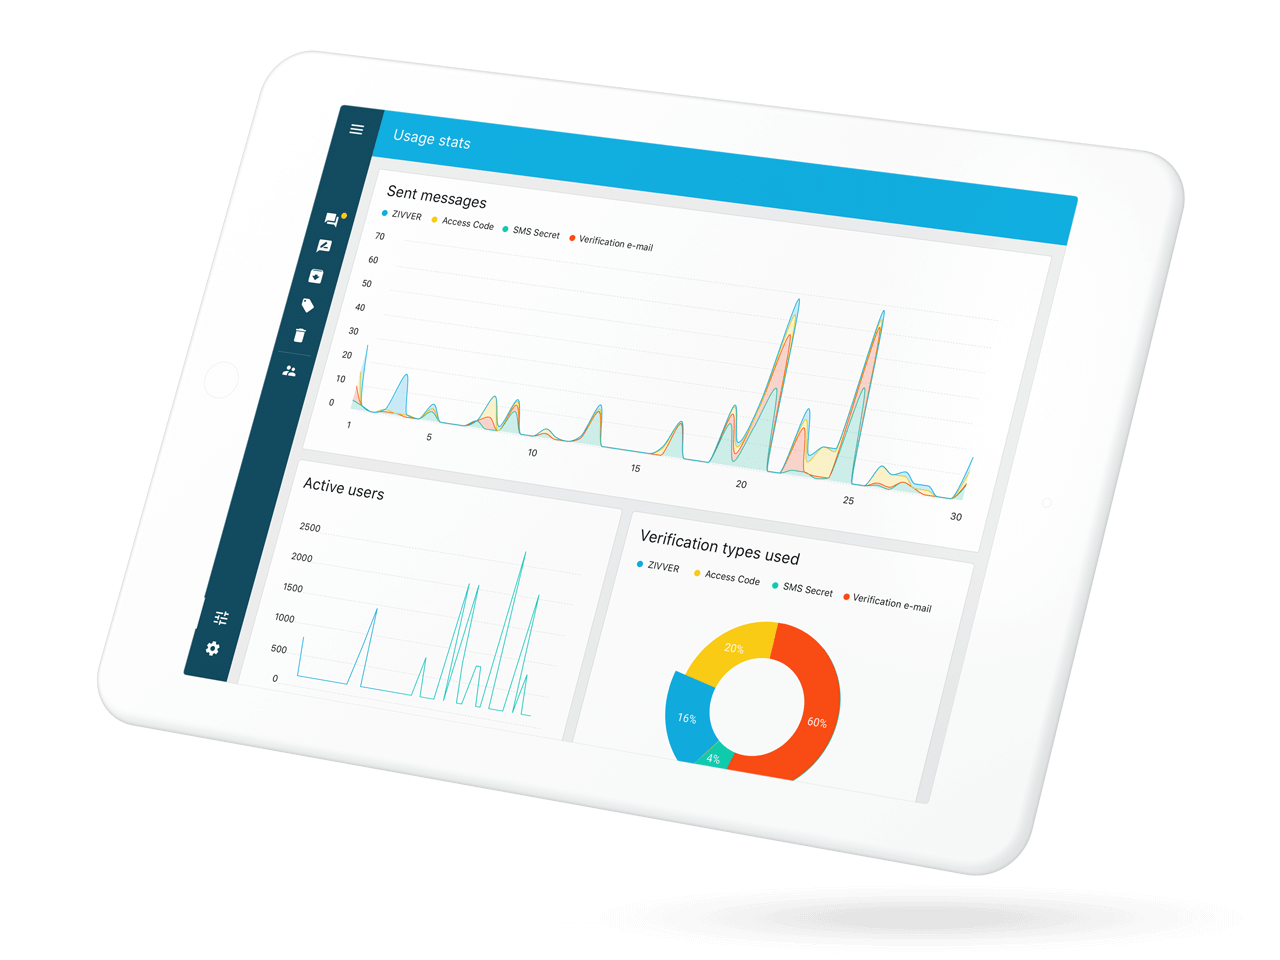 Maintain control over organizational information through reports and logs